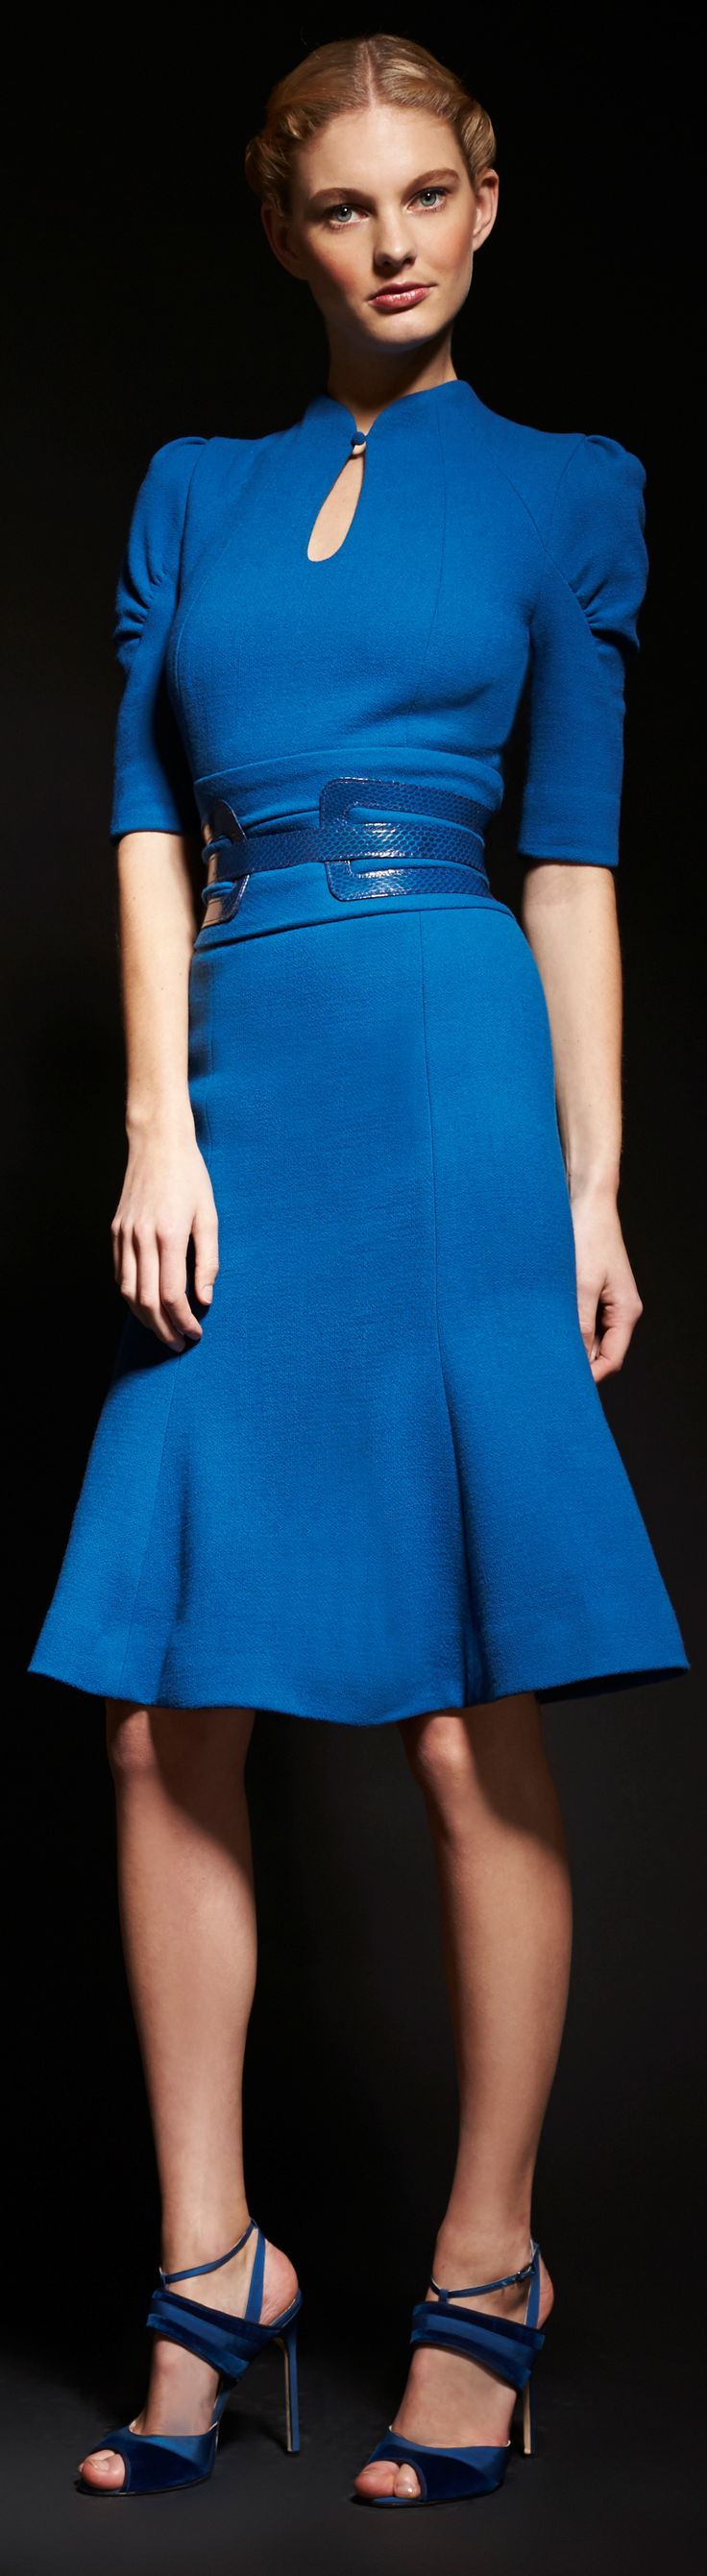 Carolina Herrera Fall 2013. Cobalt blue dress with puffed sleeves, keyhole neck, wide belted waist, and godet skirt. Two-tone blue sandals.